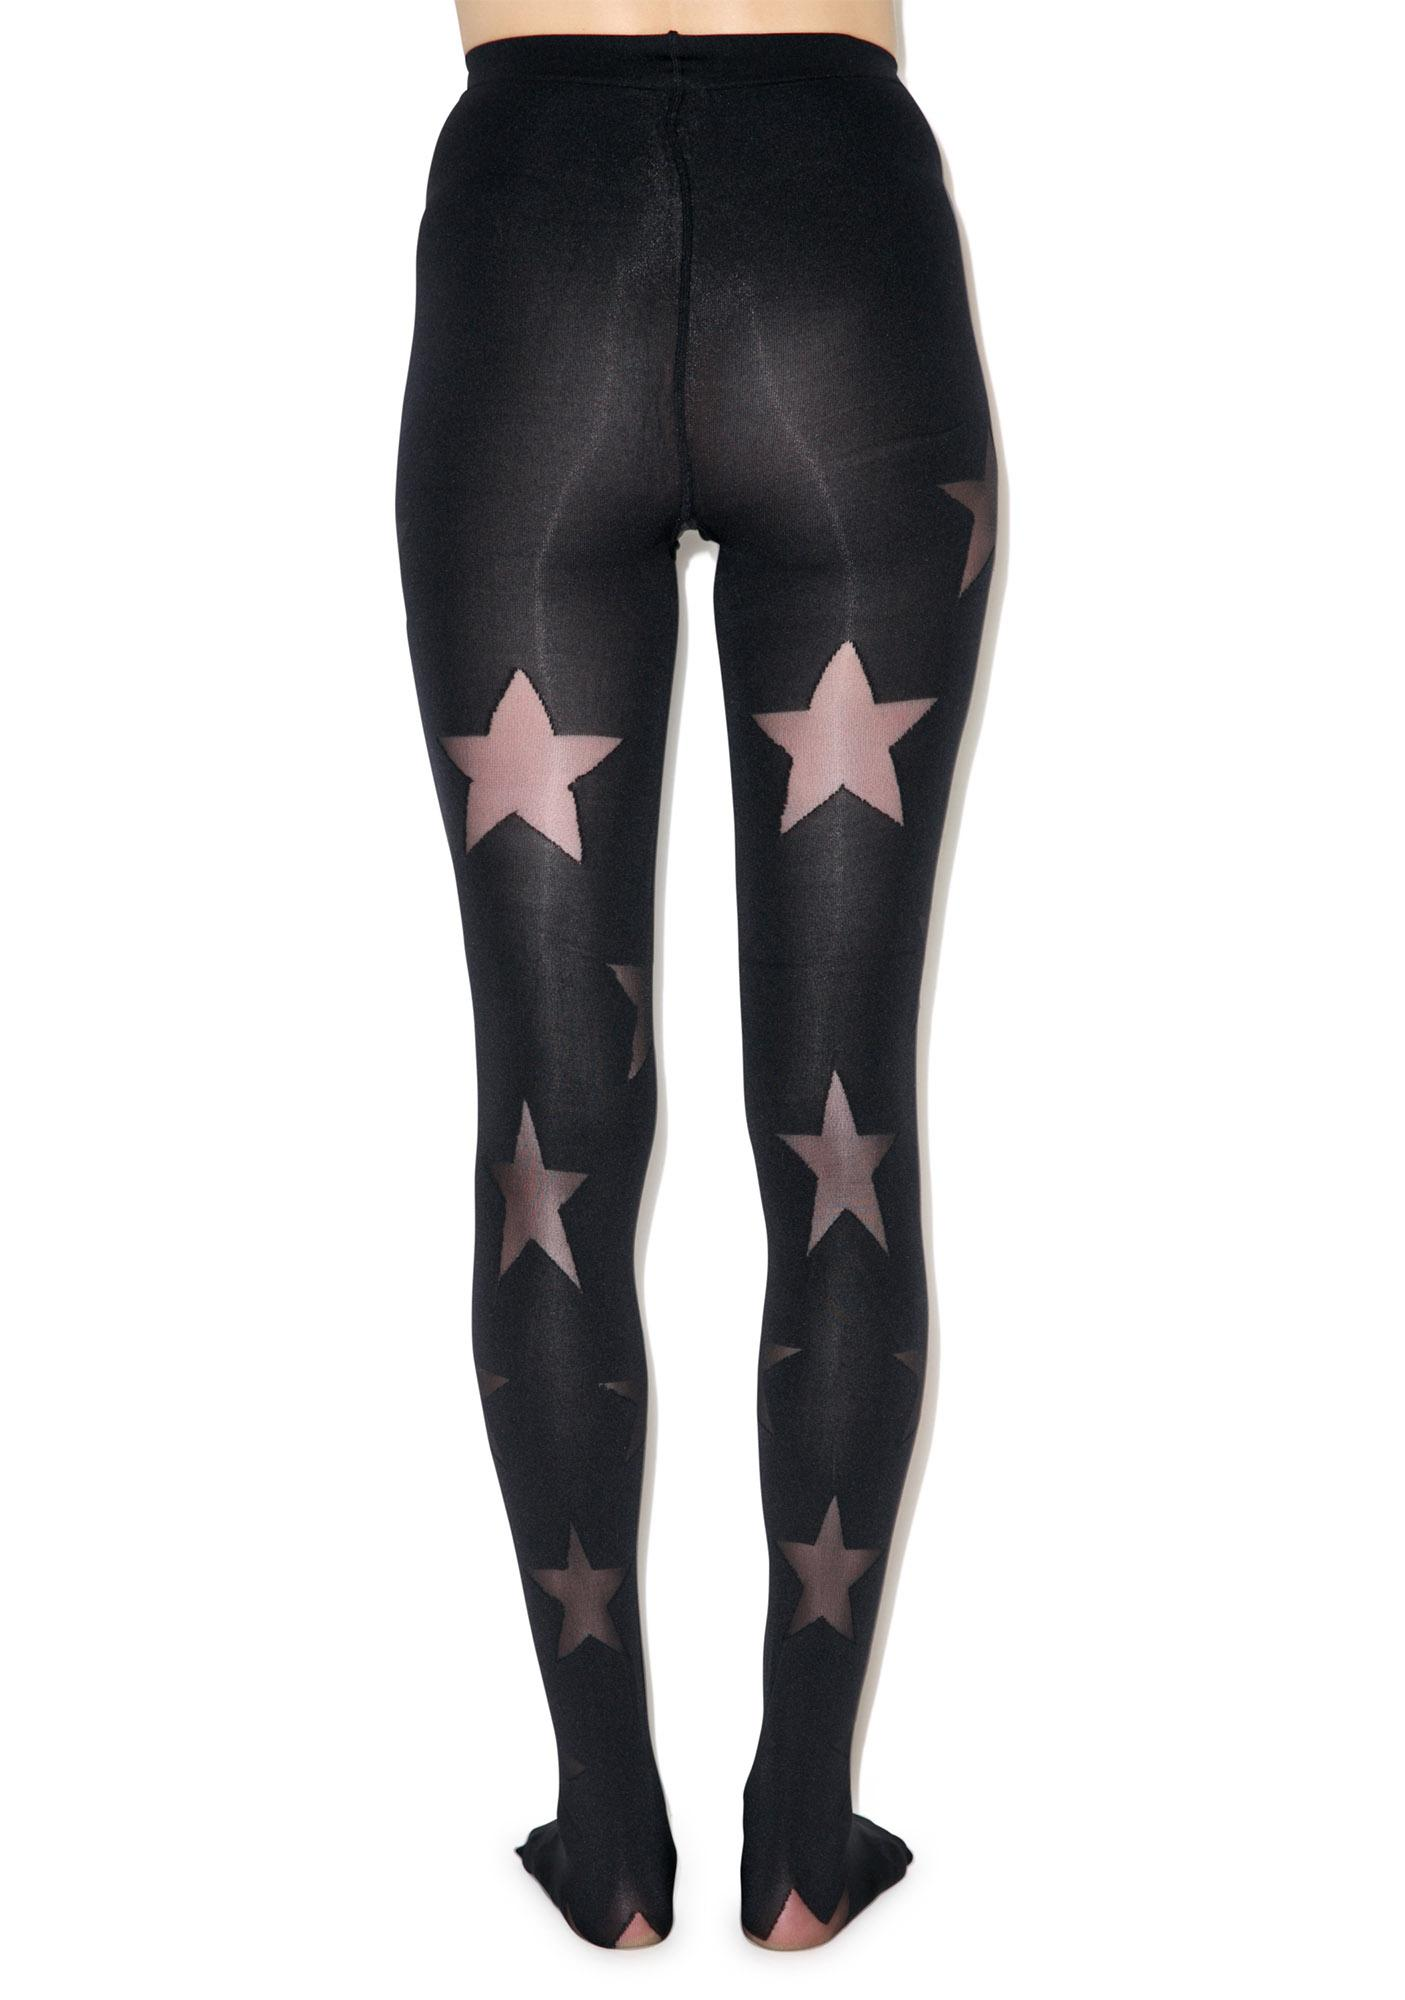 House of Holland x Pretty Polly Reverse Stars Tights